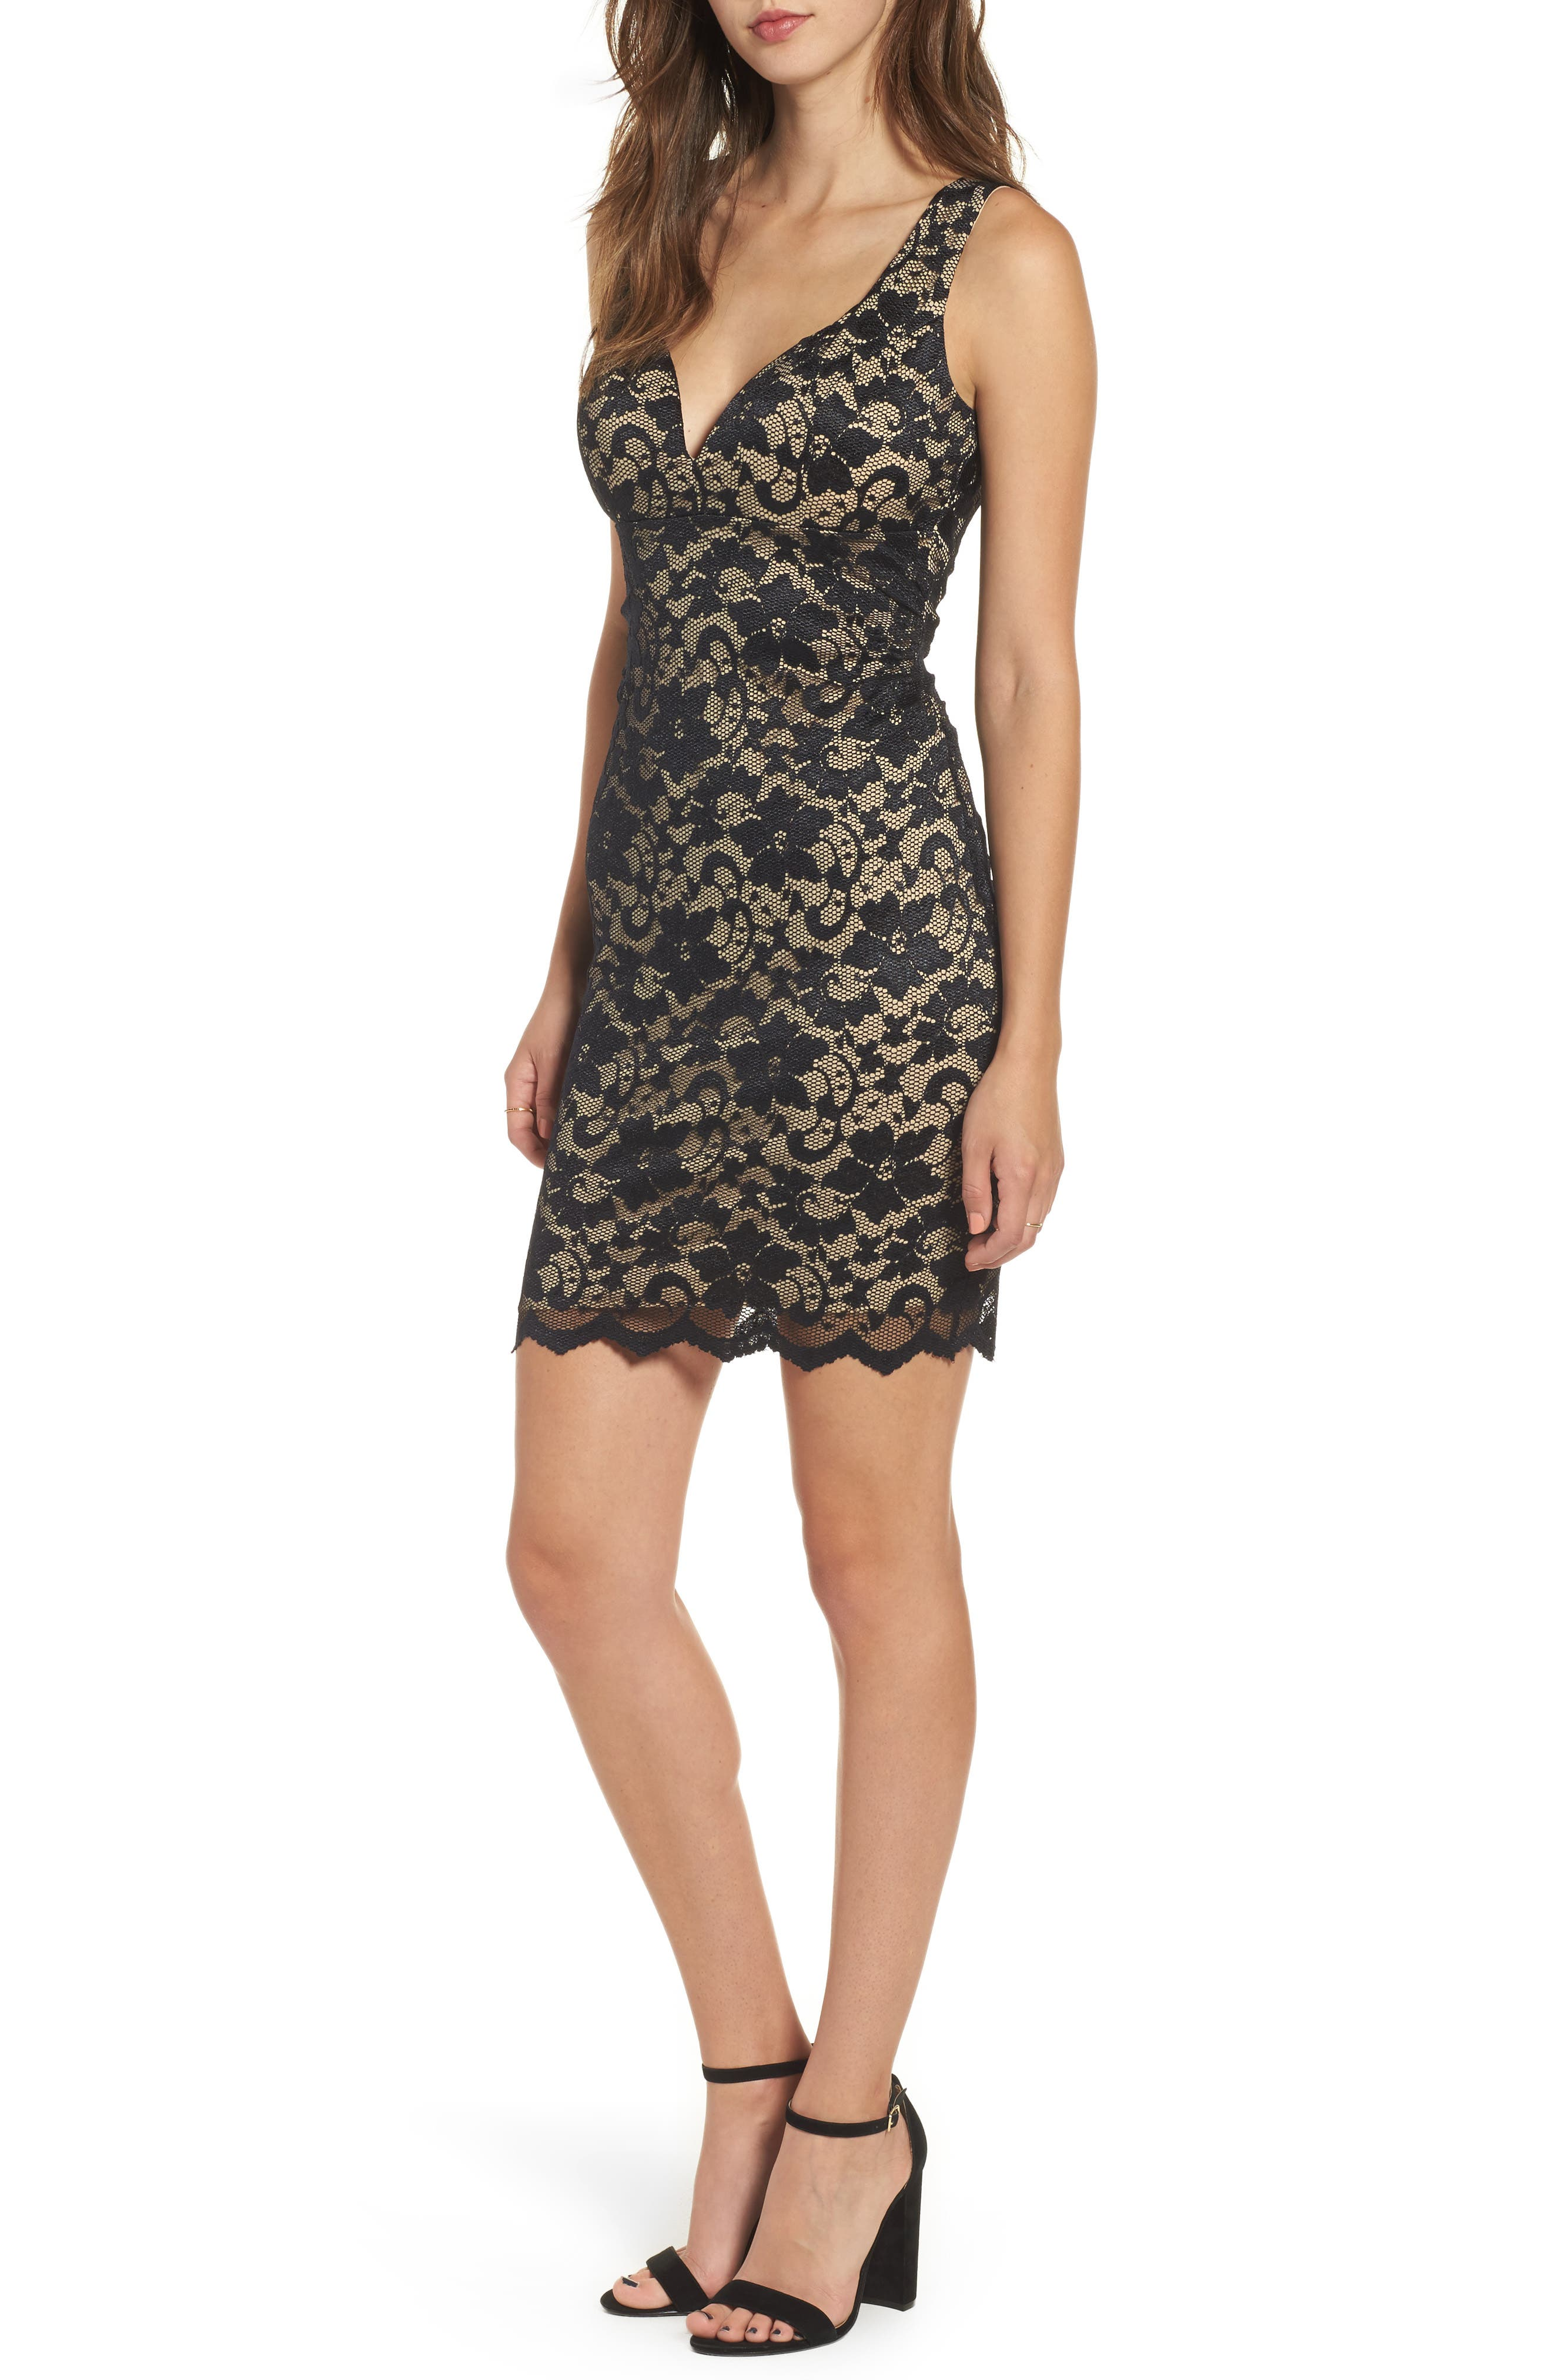 Love Nickie Lew Lace Body Con Dress,                             Main thumbnail 1, color,                             Black/ Nude